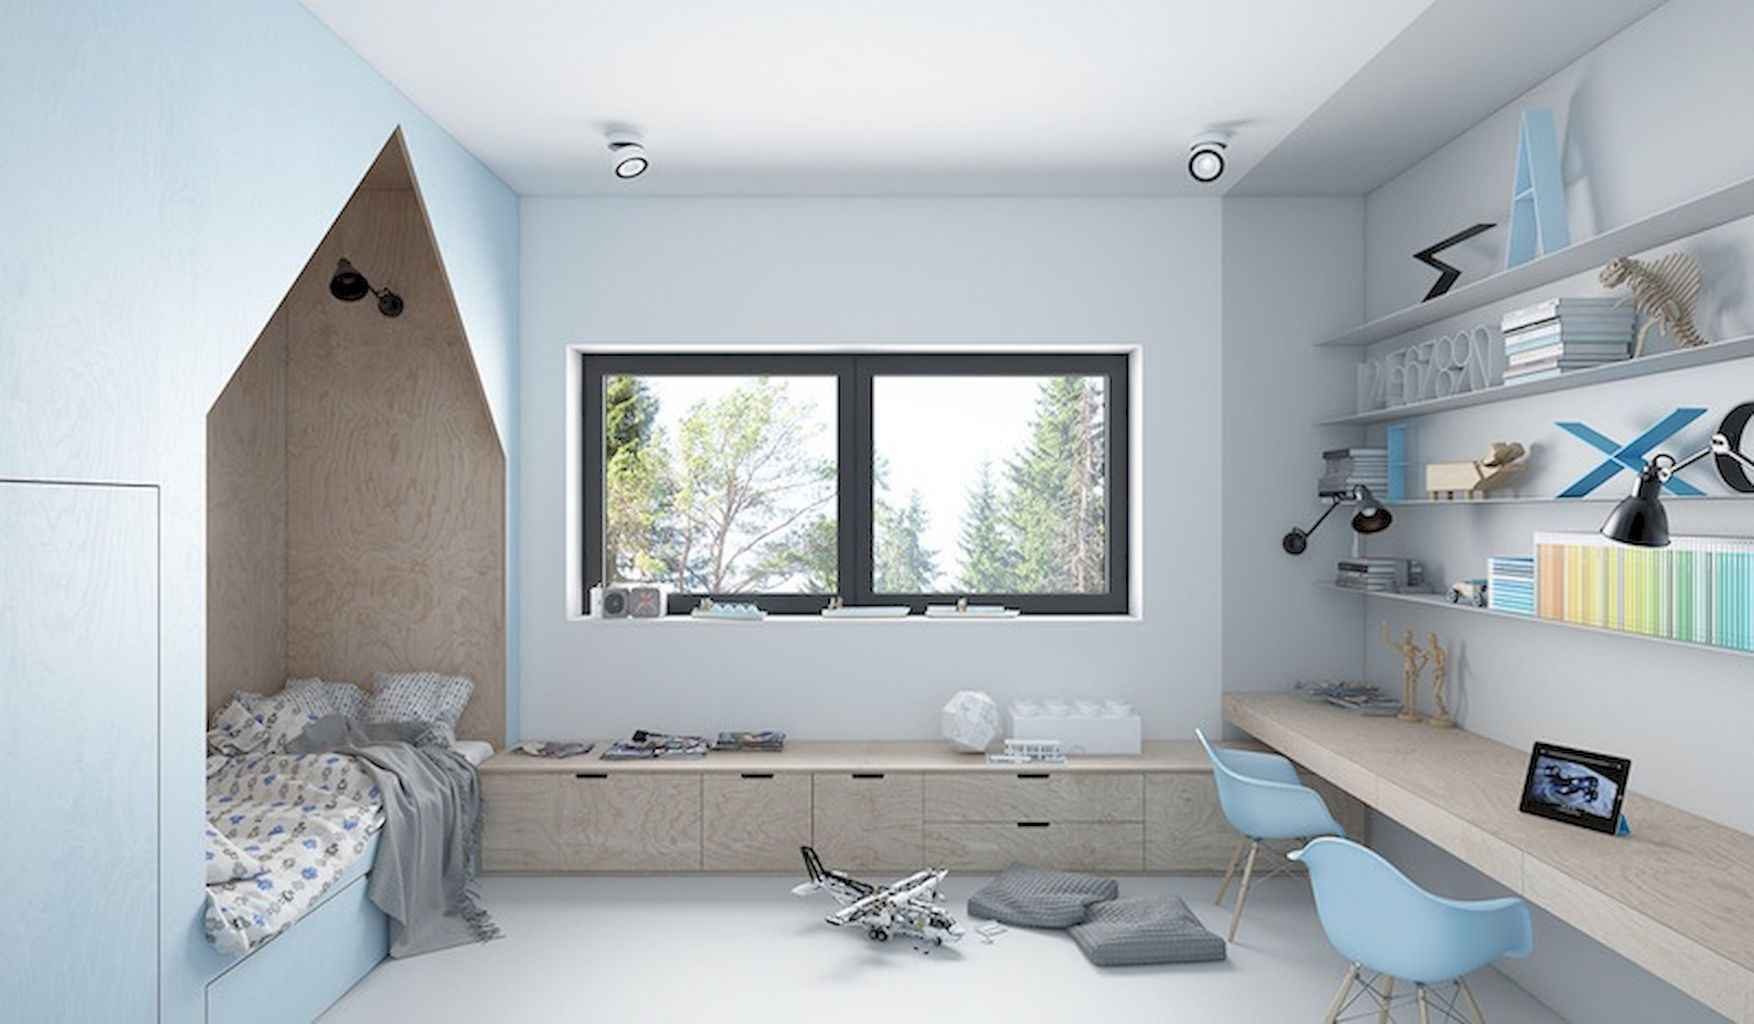 Awesome ideas bedroom for kids (48)